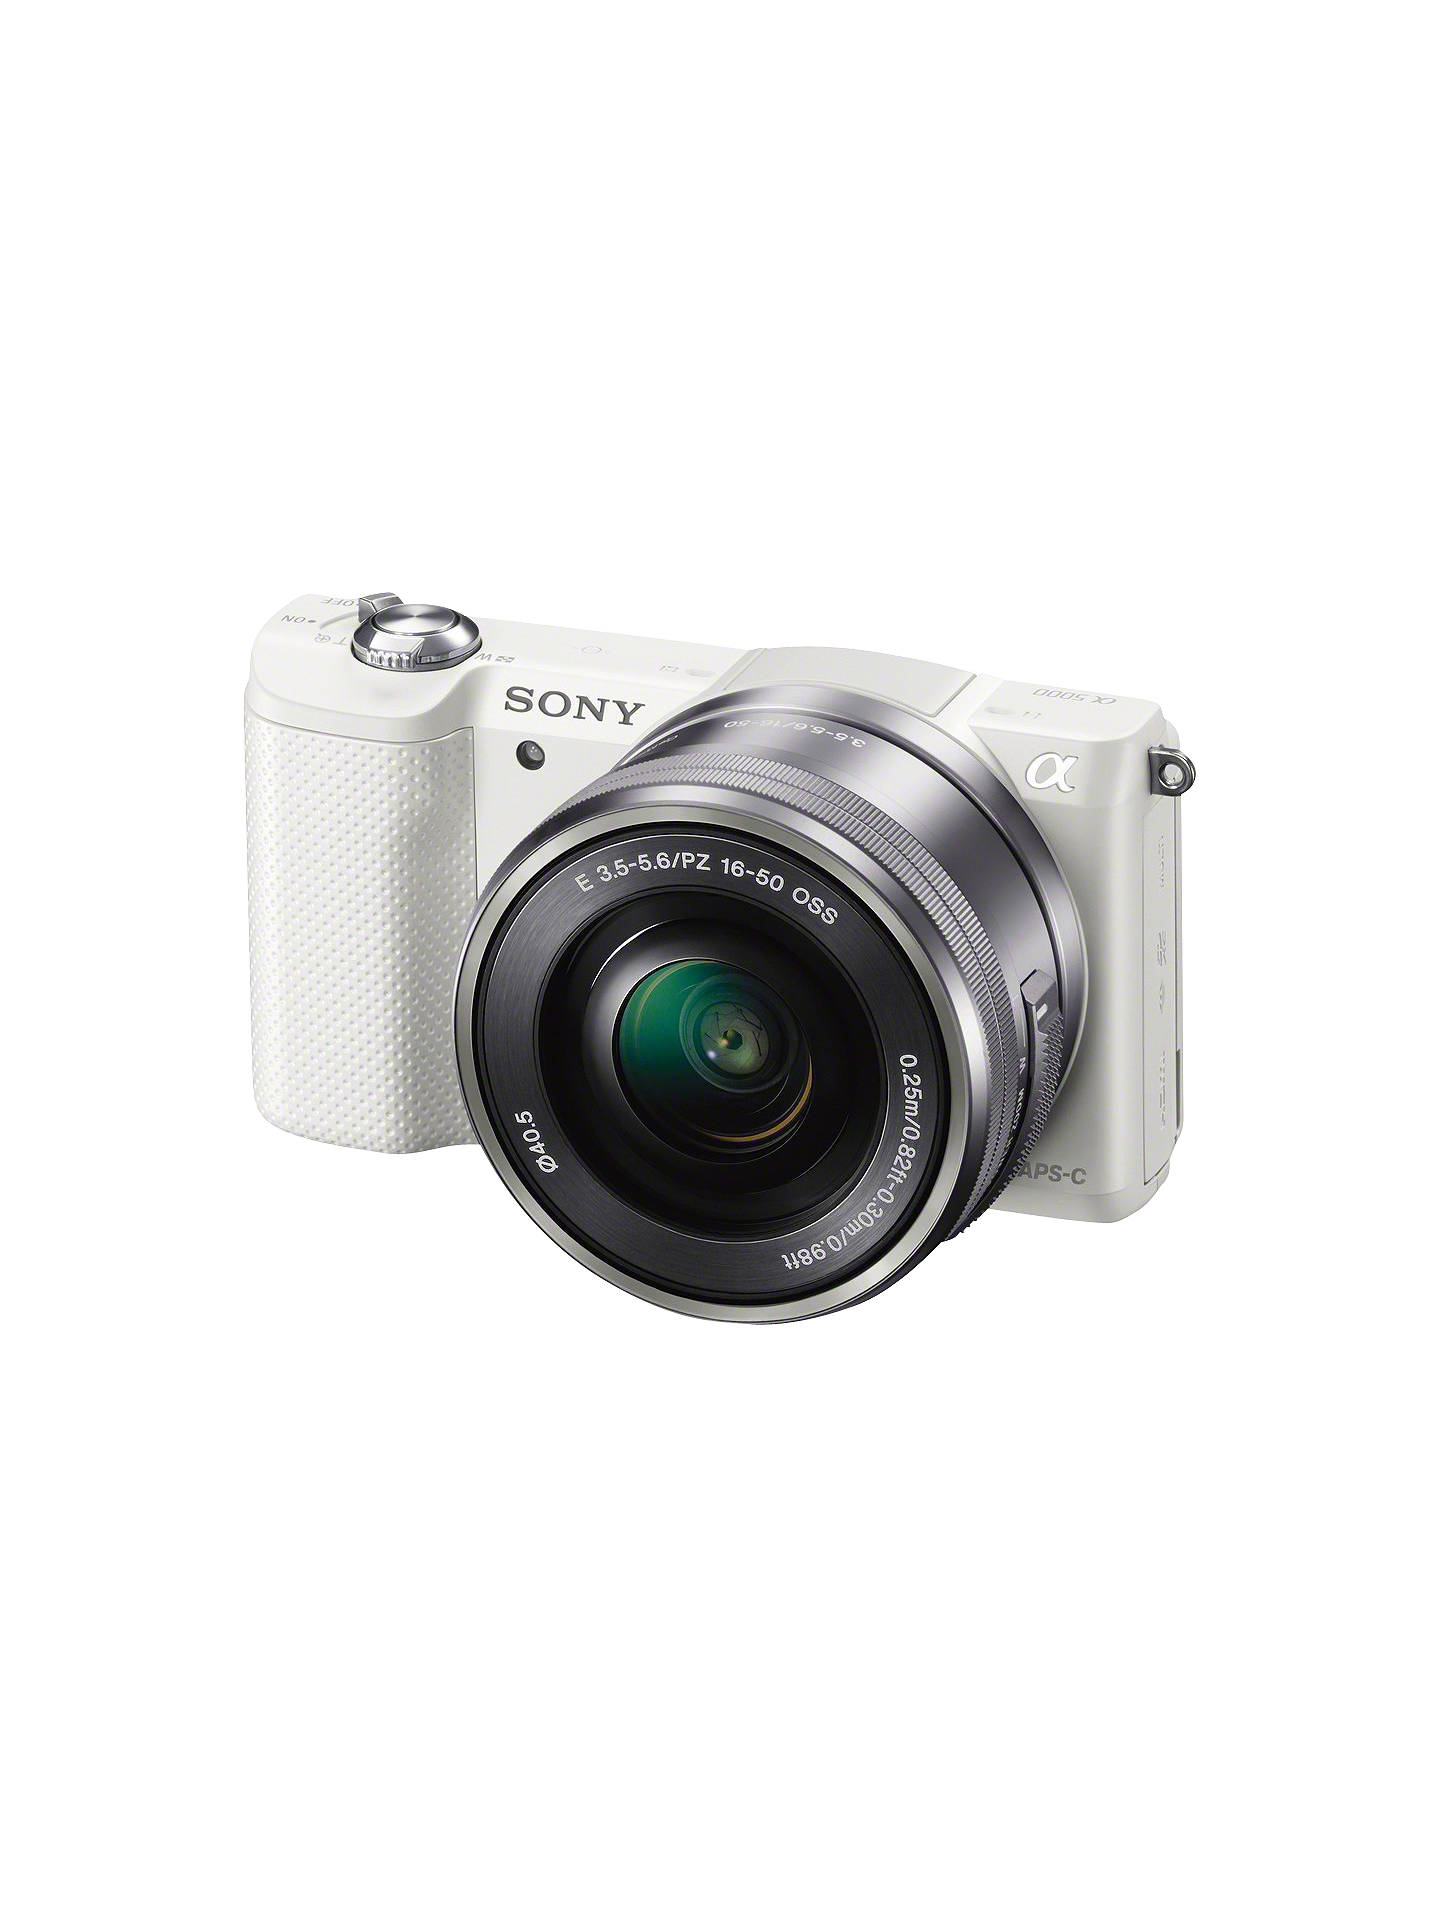 "Buy Sony A5000 Compact System Camera with 16-50mm Lens, HD 1080p, 20.1MP, Wi-Fi, 3"" Tilting LCD Screen, White Online at johnlewis.com"